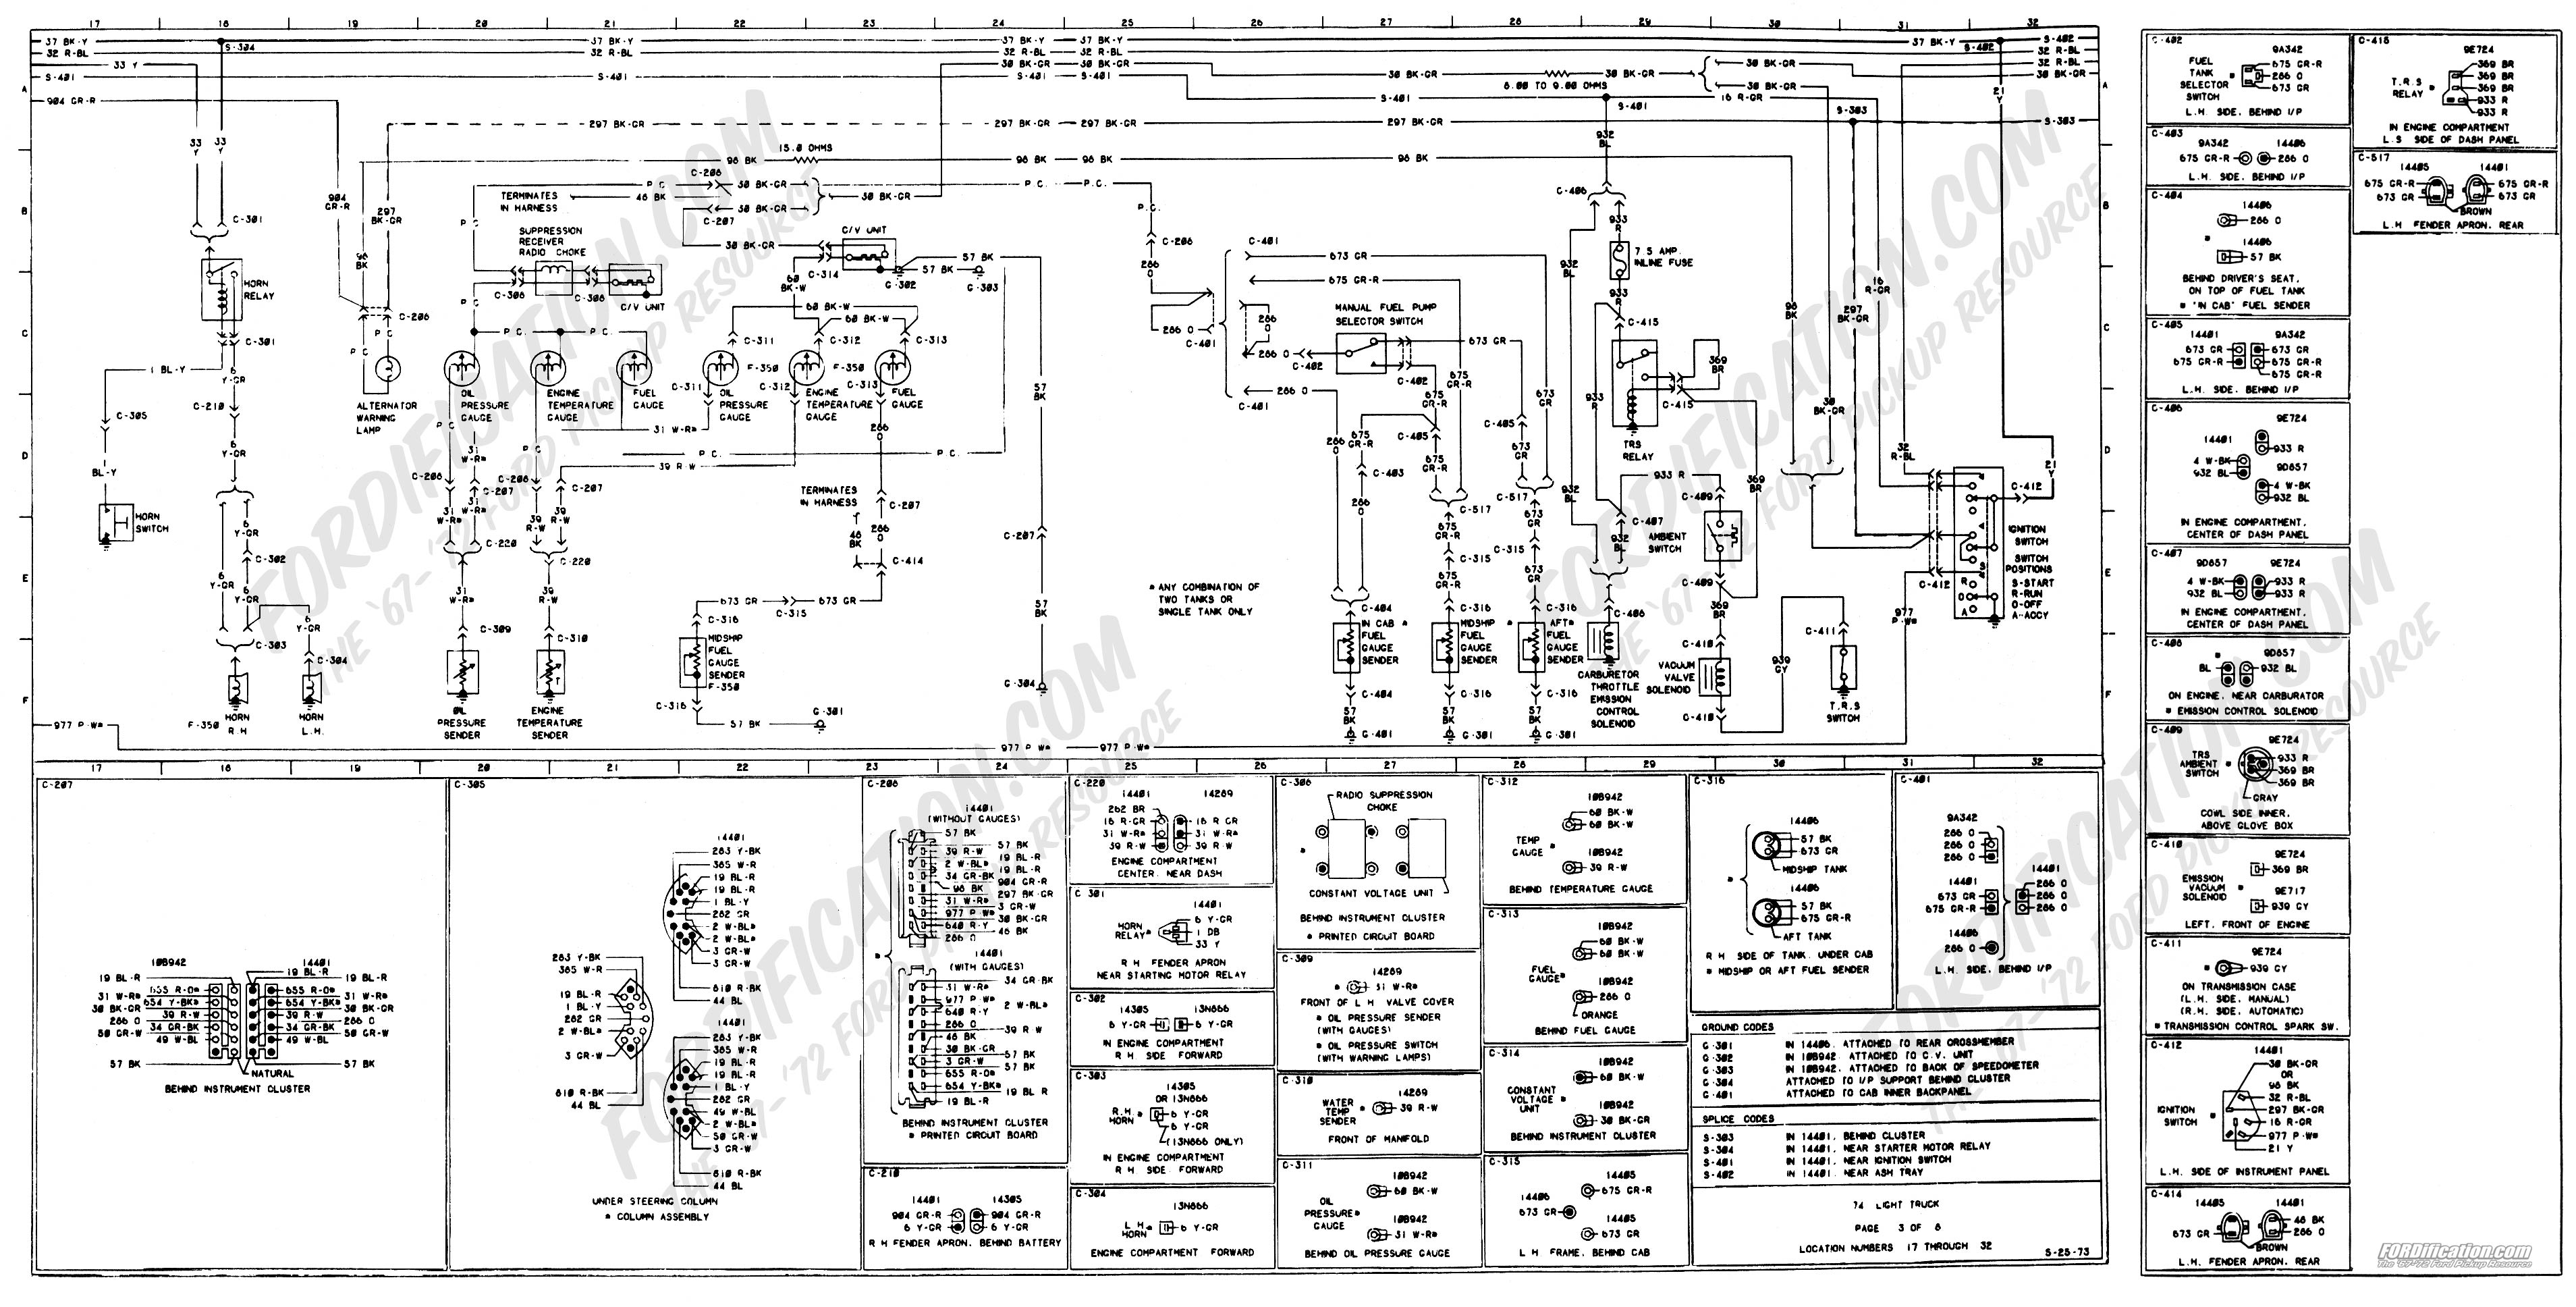 wiring_74master_3of8 1995 ford l9000 wiring schematic ford l9000 fuse \u2022 wiring diagrams  at readyjetset.co